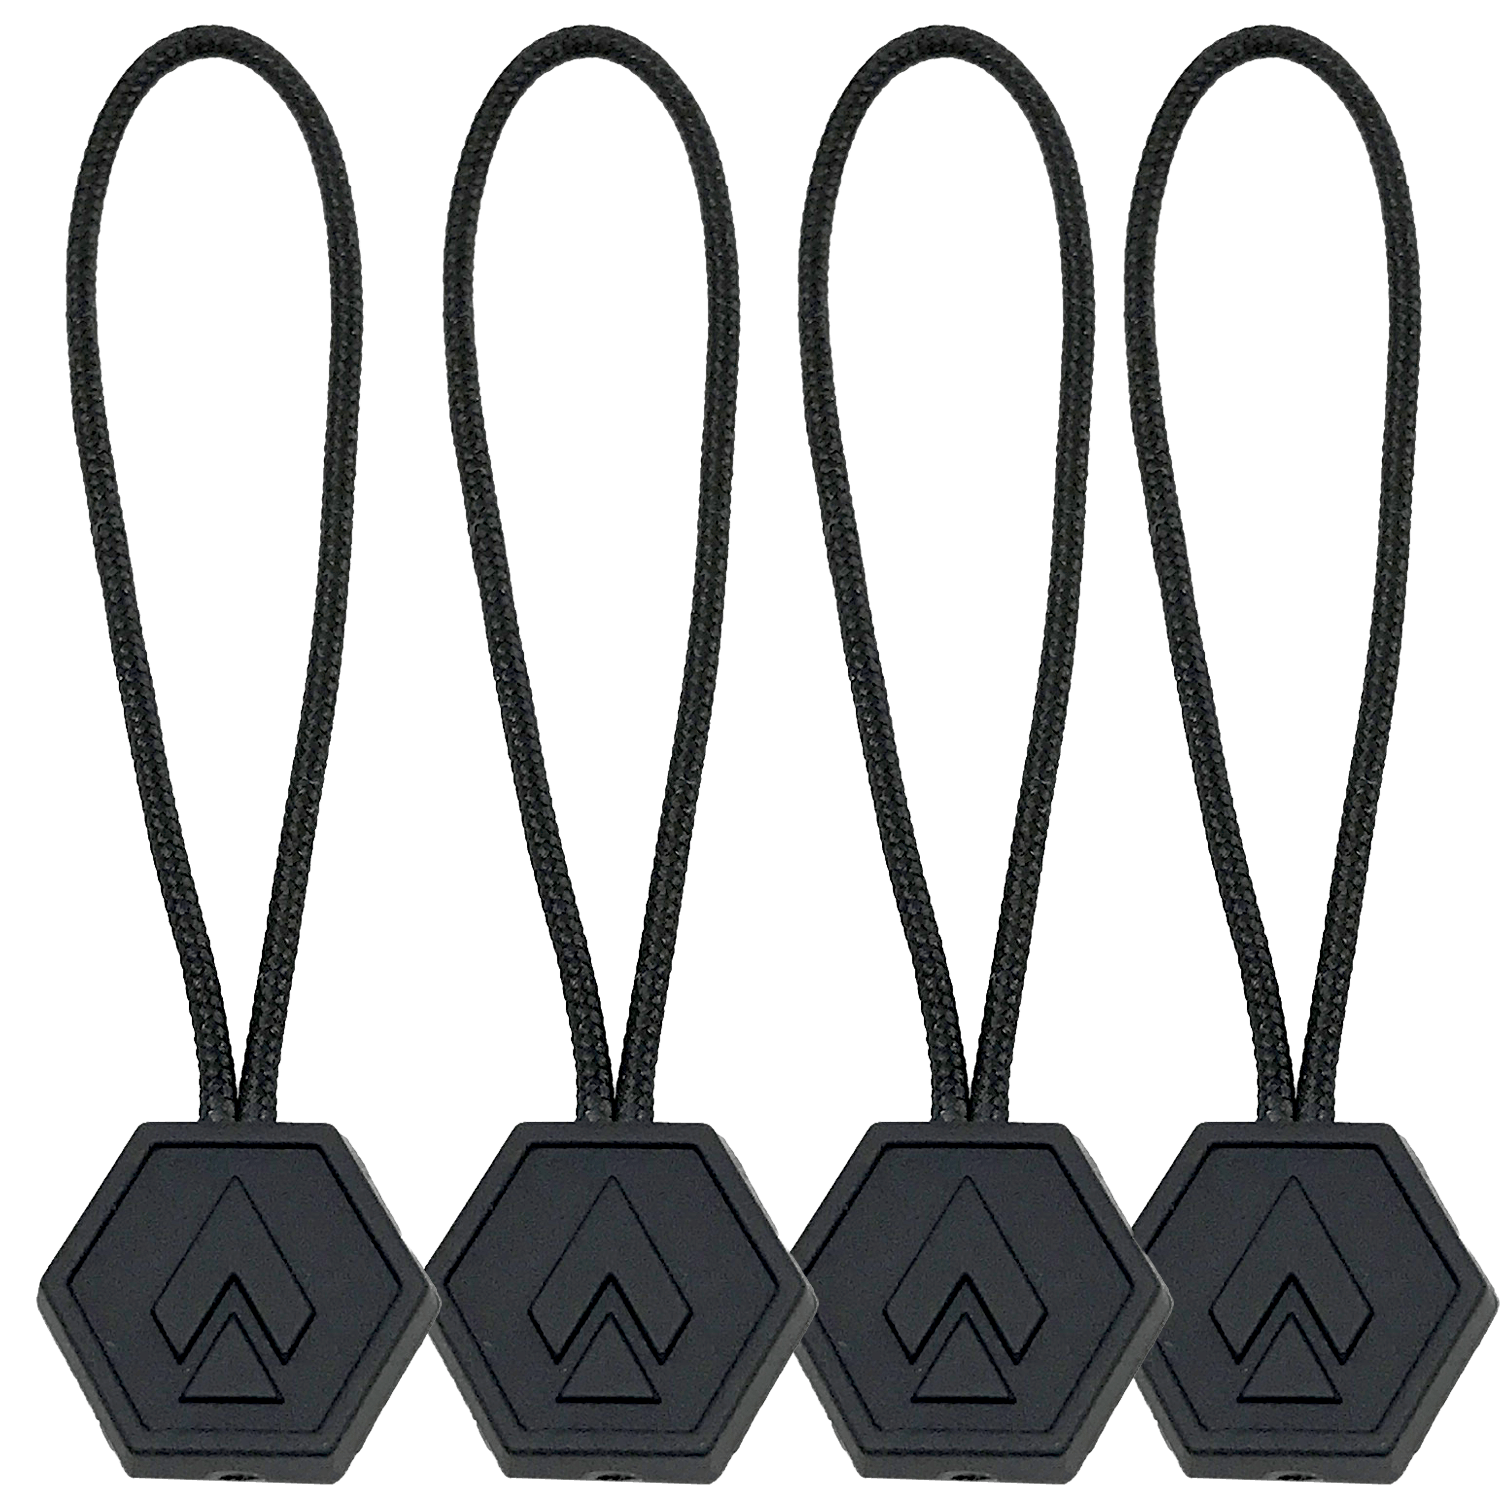 Tip of the Spear Zipper Pulls - 4 pack